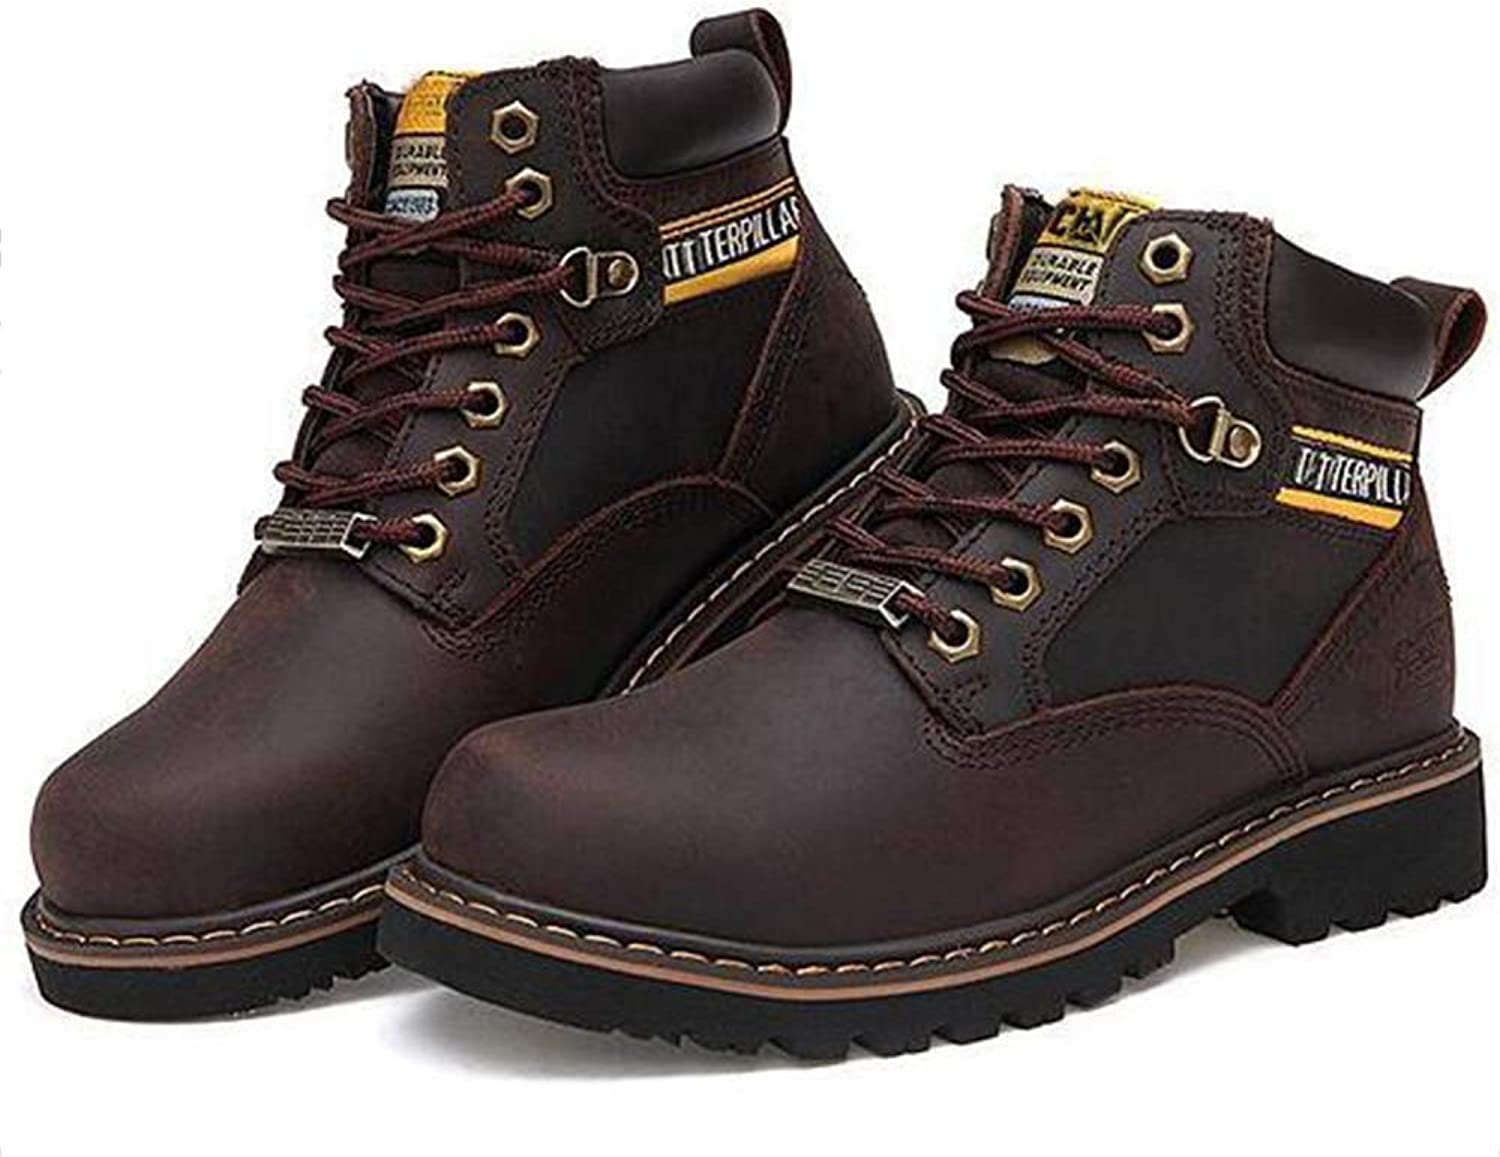 Snfgoij Safety shoes Men Trainers Waterproof Anti-Slip Outdoor Martin Boots Scrub Leather Outdoor High Help,Brown-40